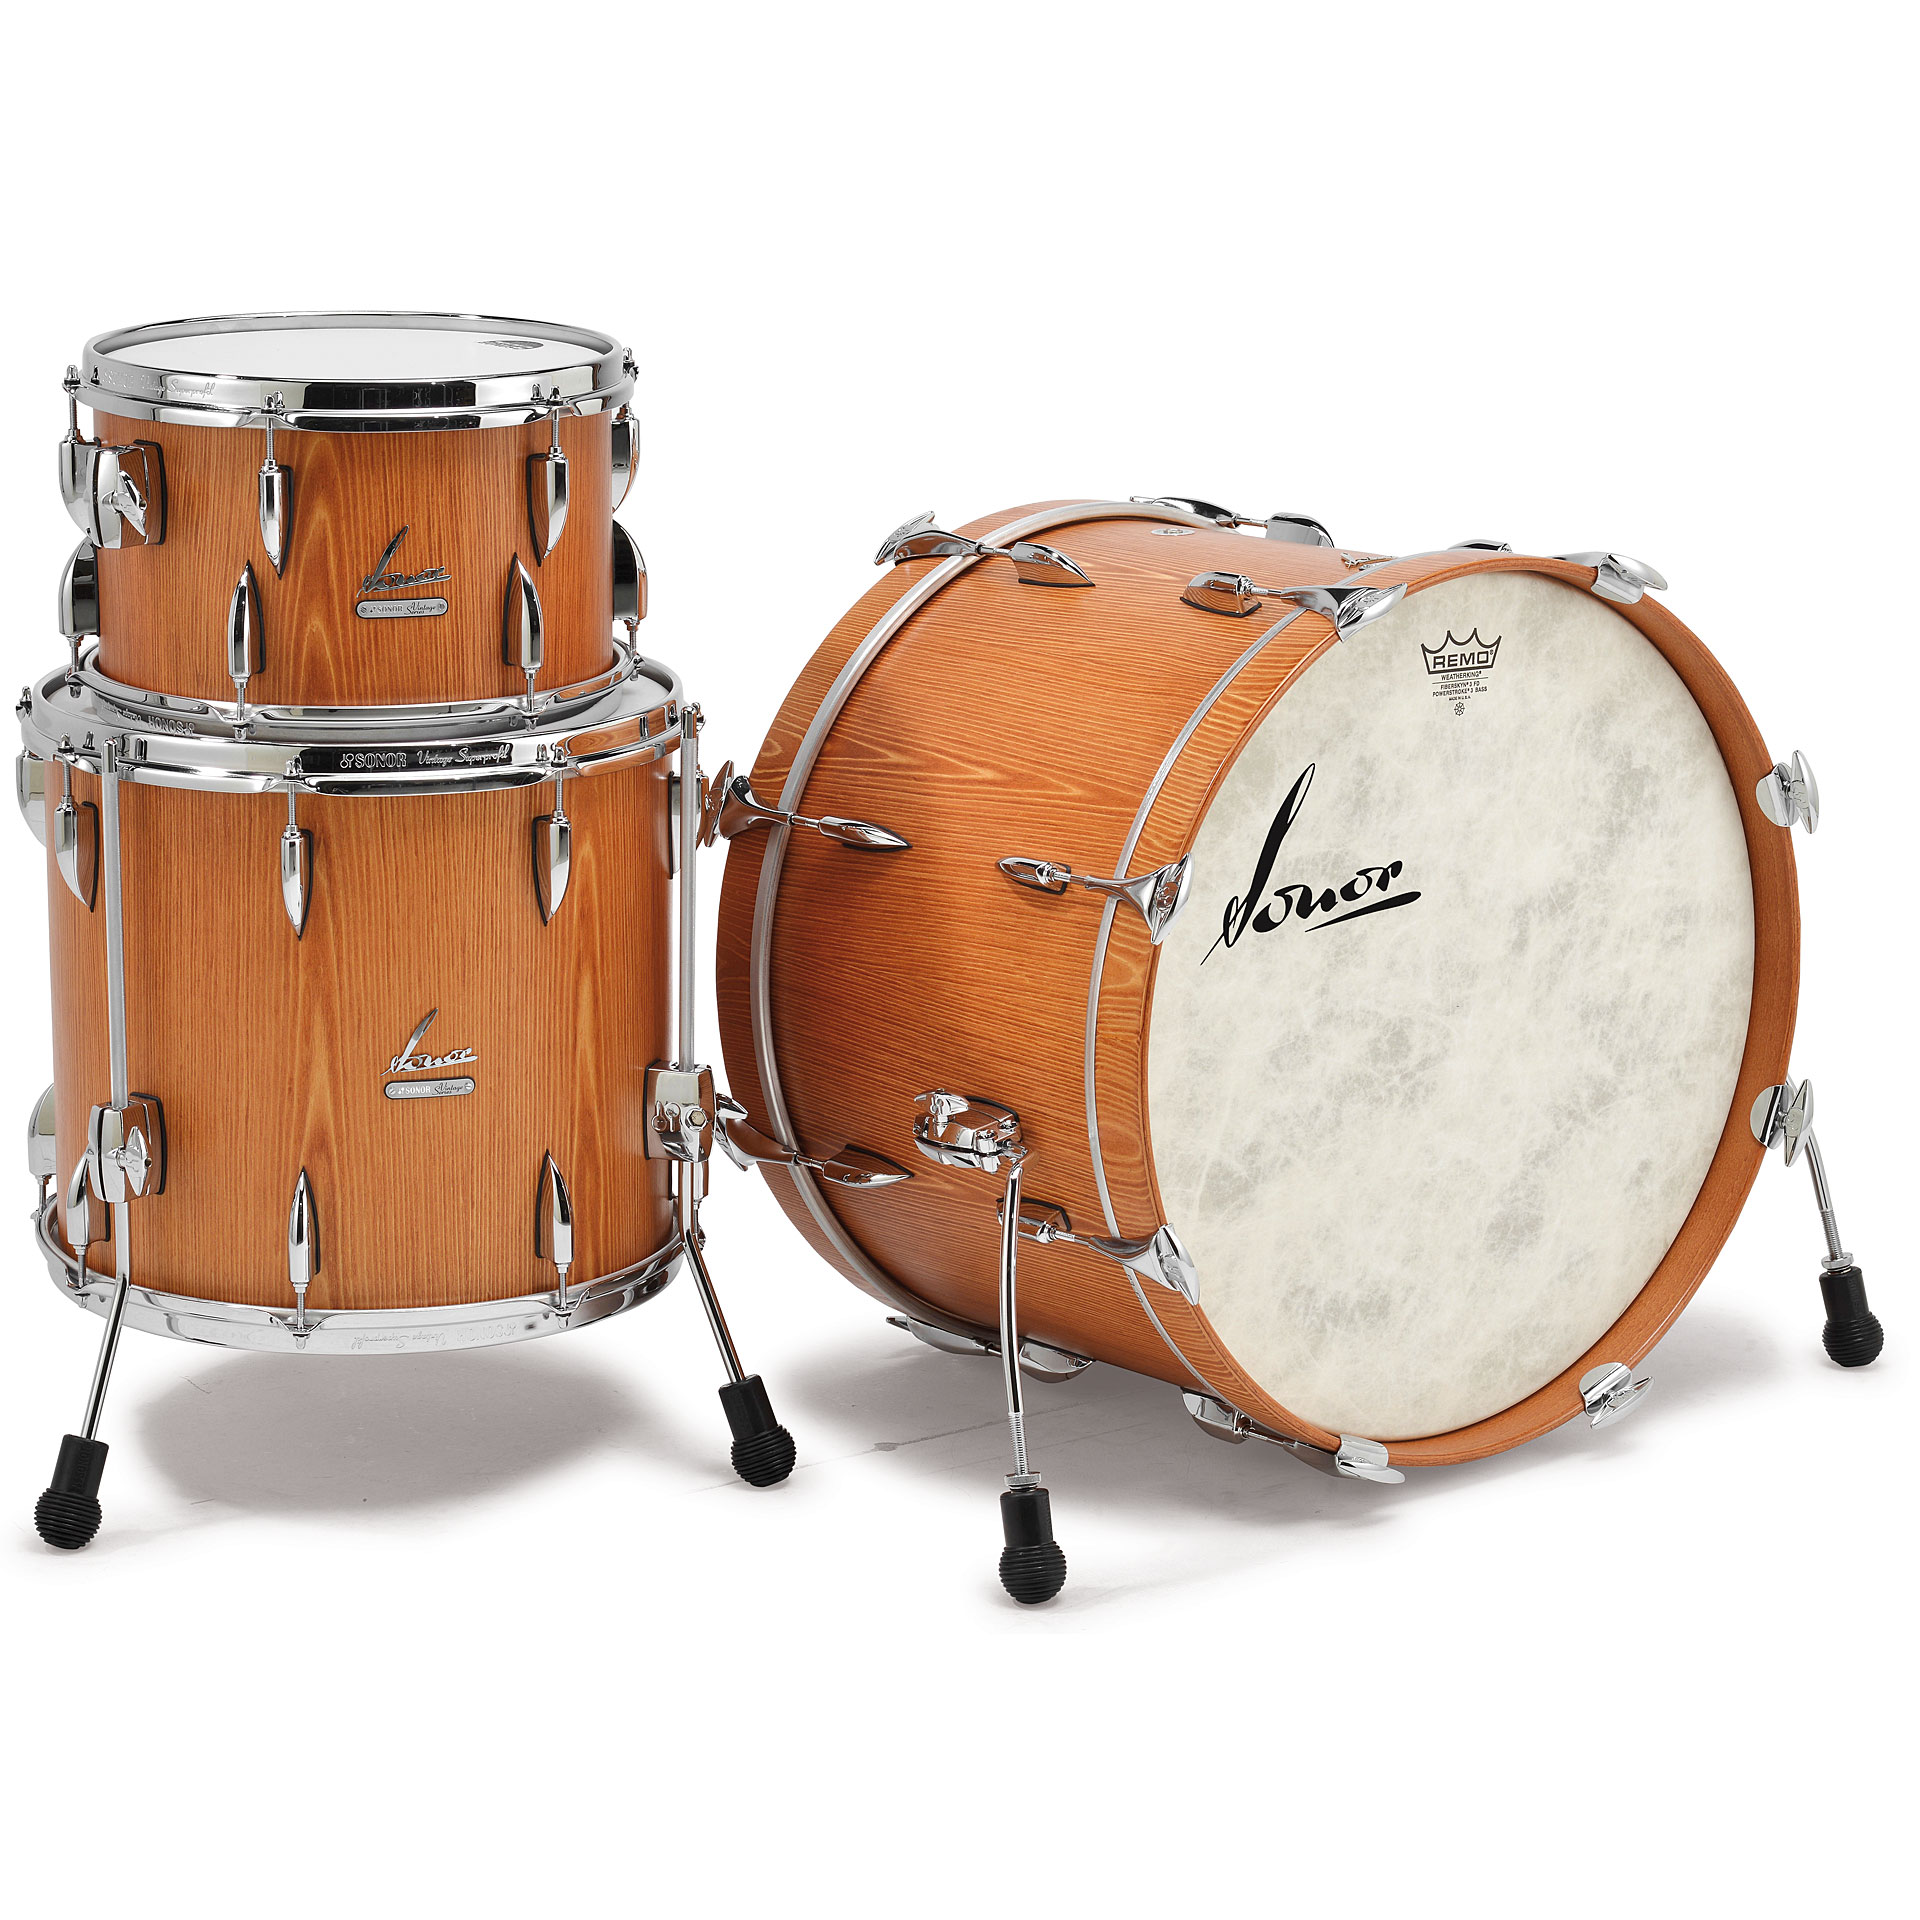 Sonor vt15 three22 vintage natural drum kit for Classic house drums